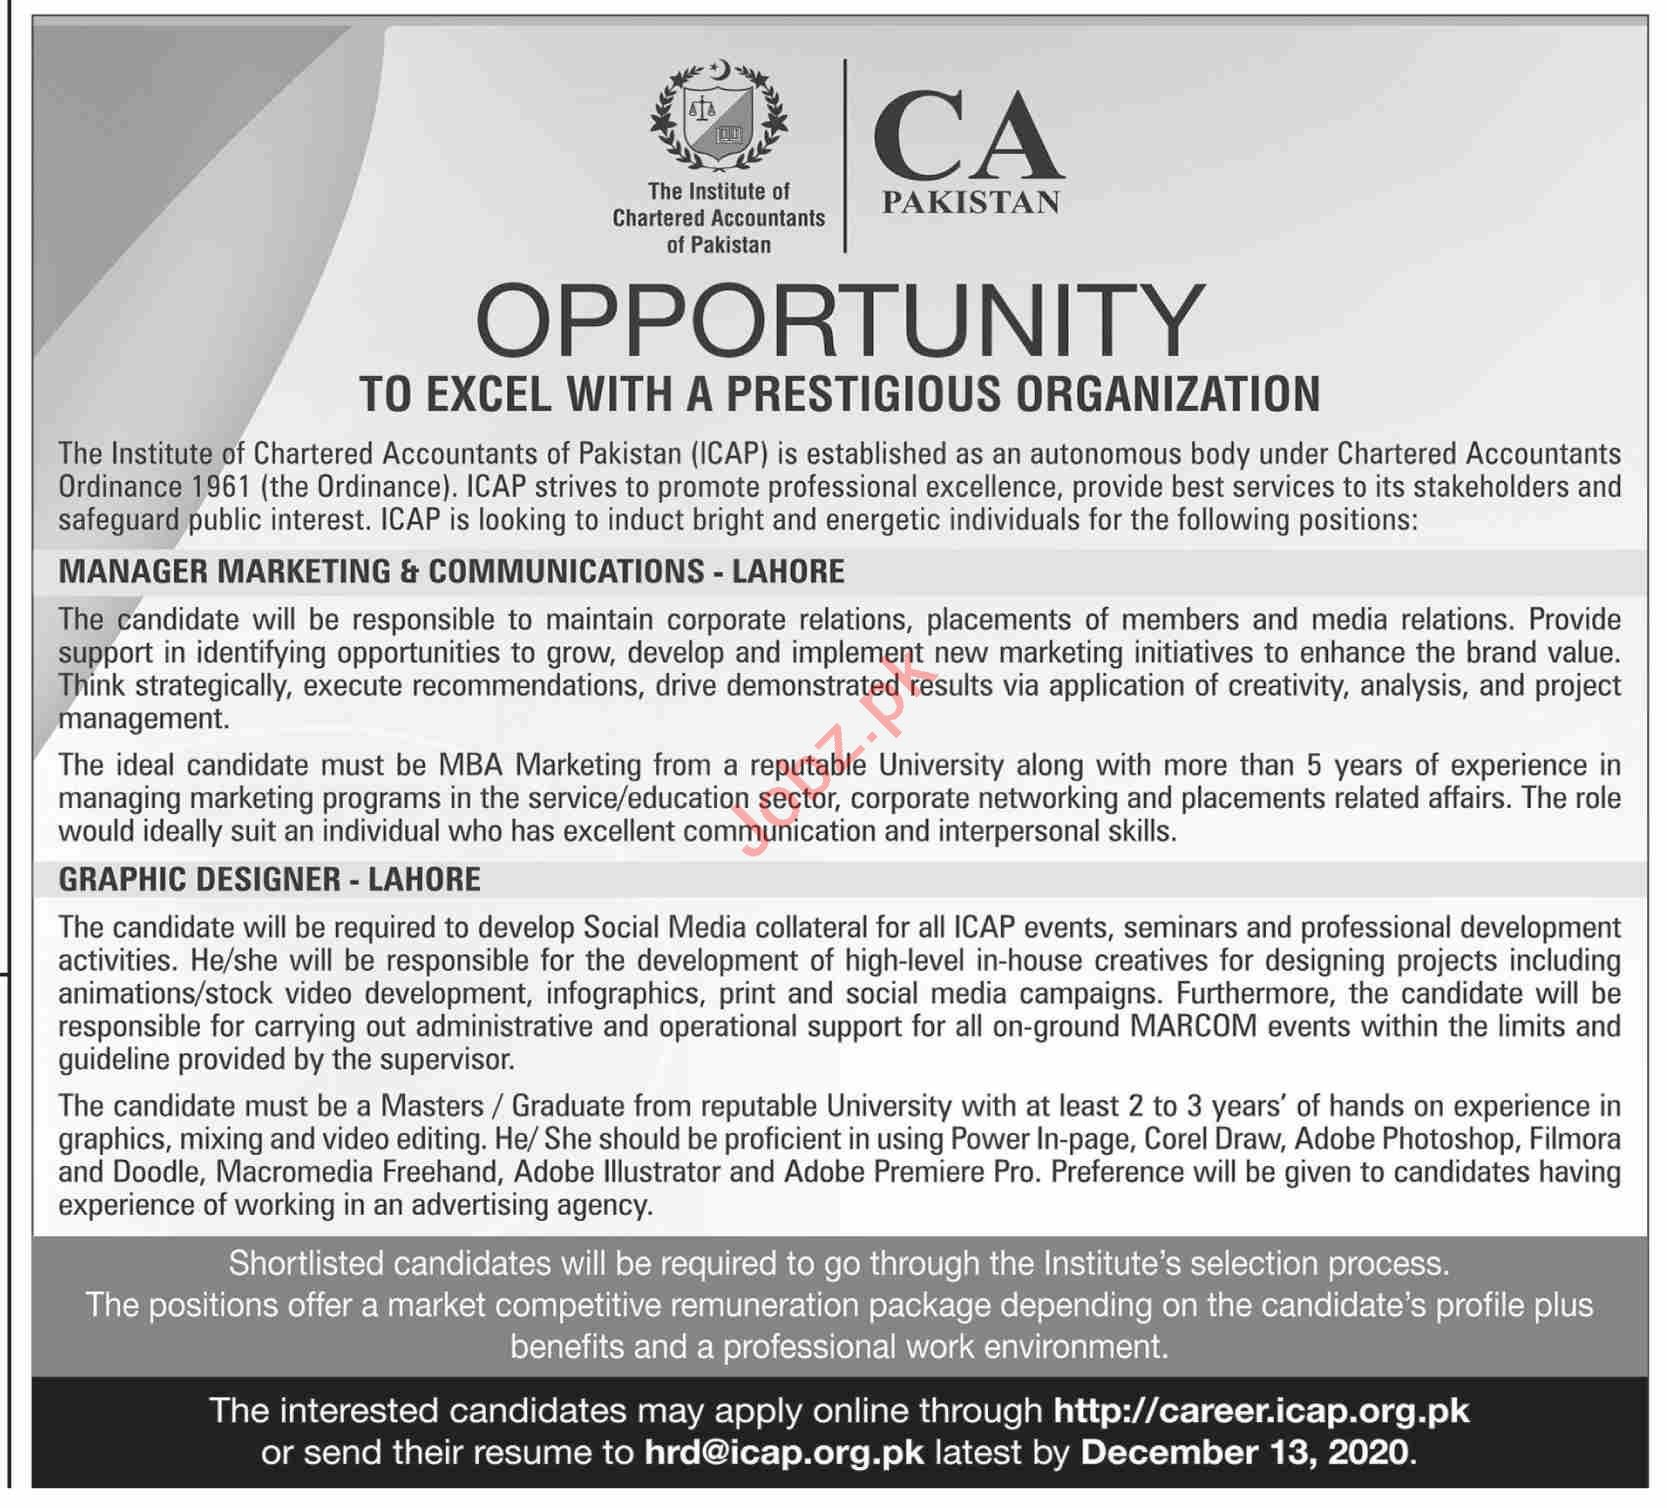 CA Pakistan Jobs 2020 for Manager Marketing & Communications